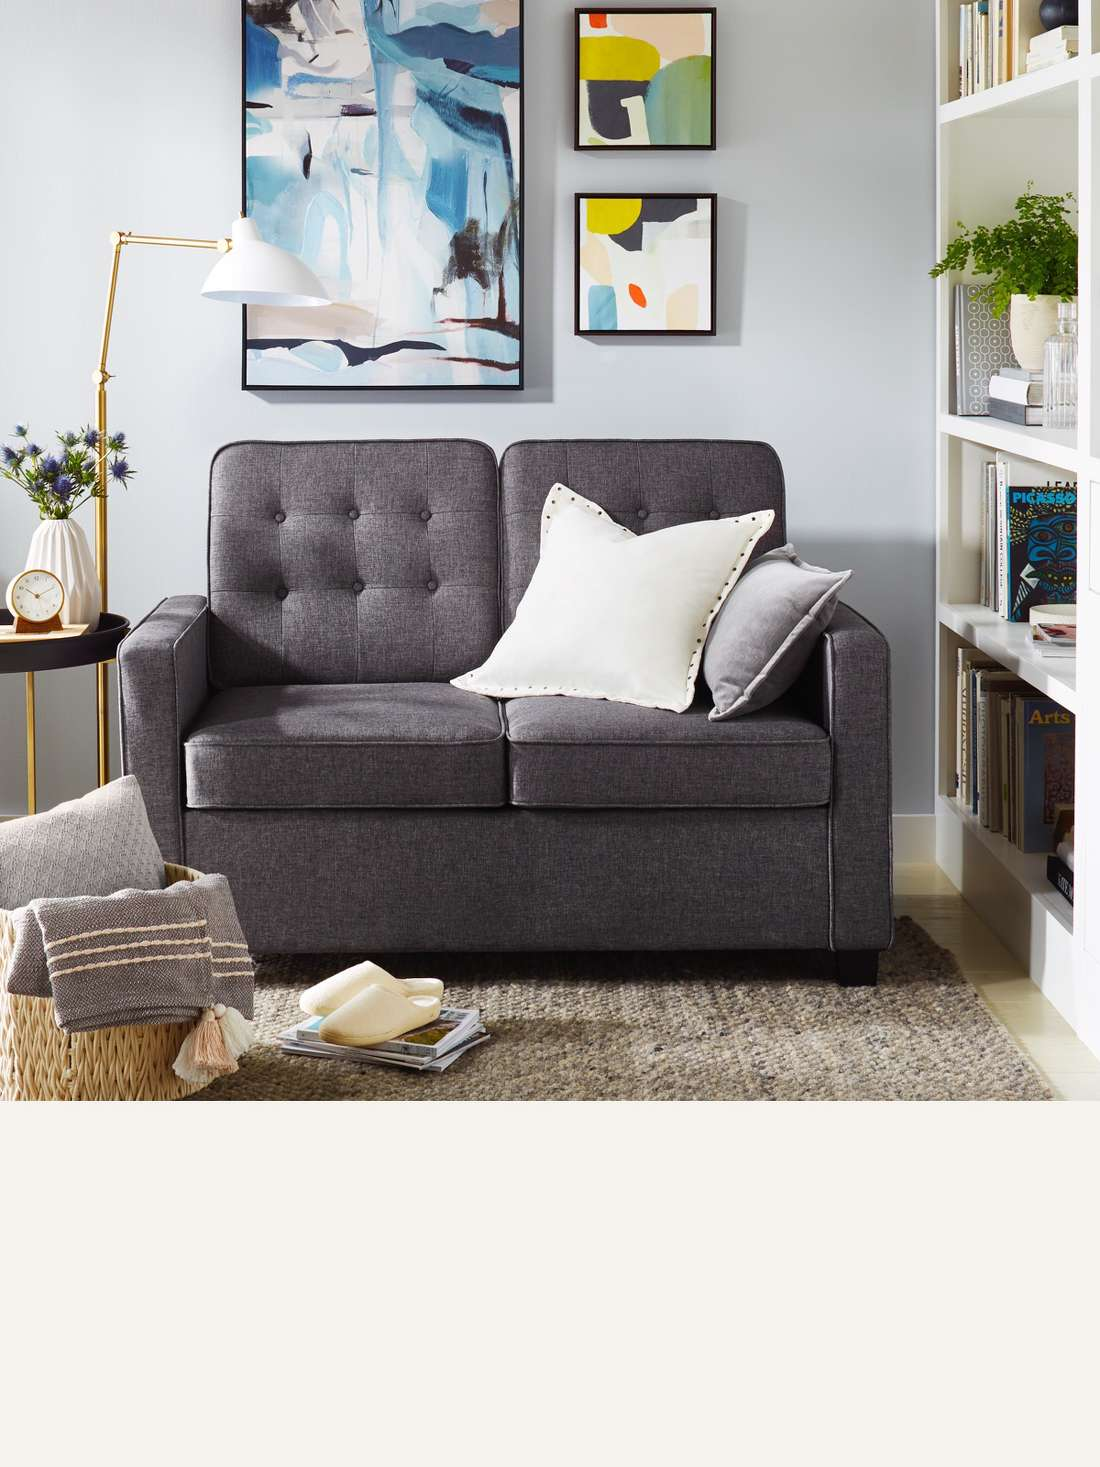 sofas sectionals target accent table room essentials also known pull out sofa sleeper functional way turn study into guest browse sleepers grey couch and loveseat set solid brass